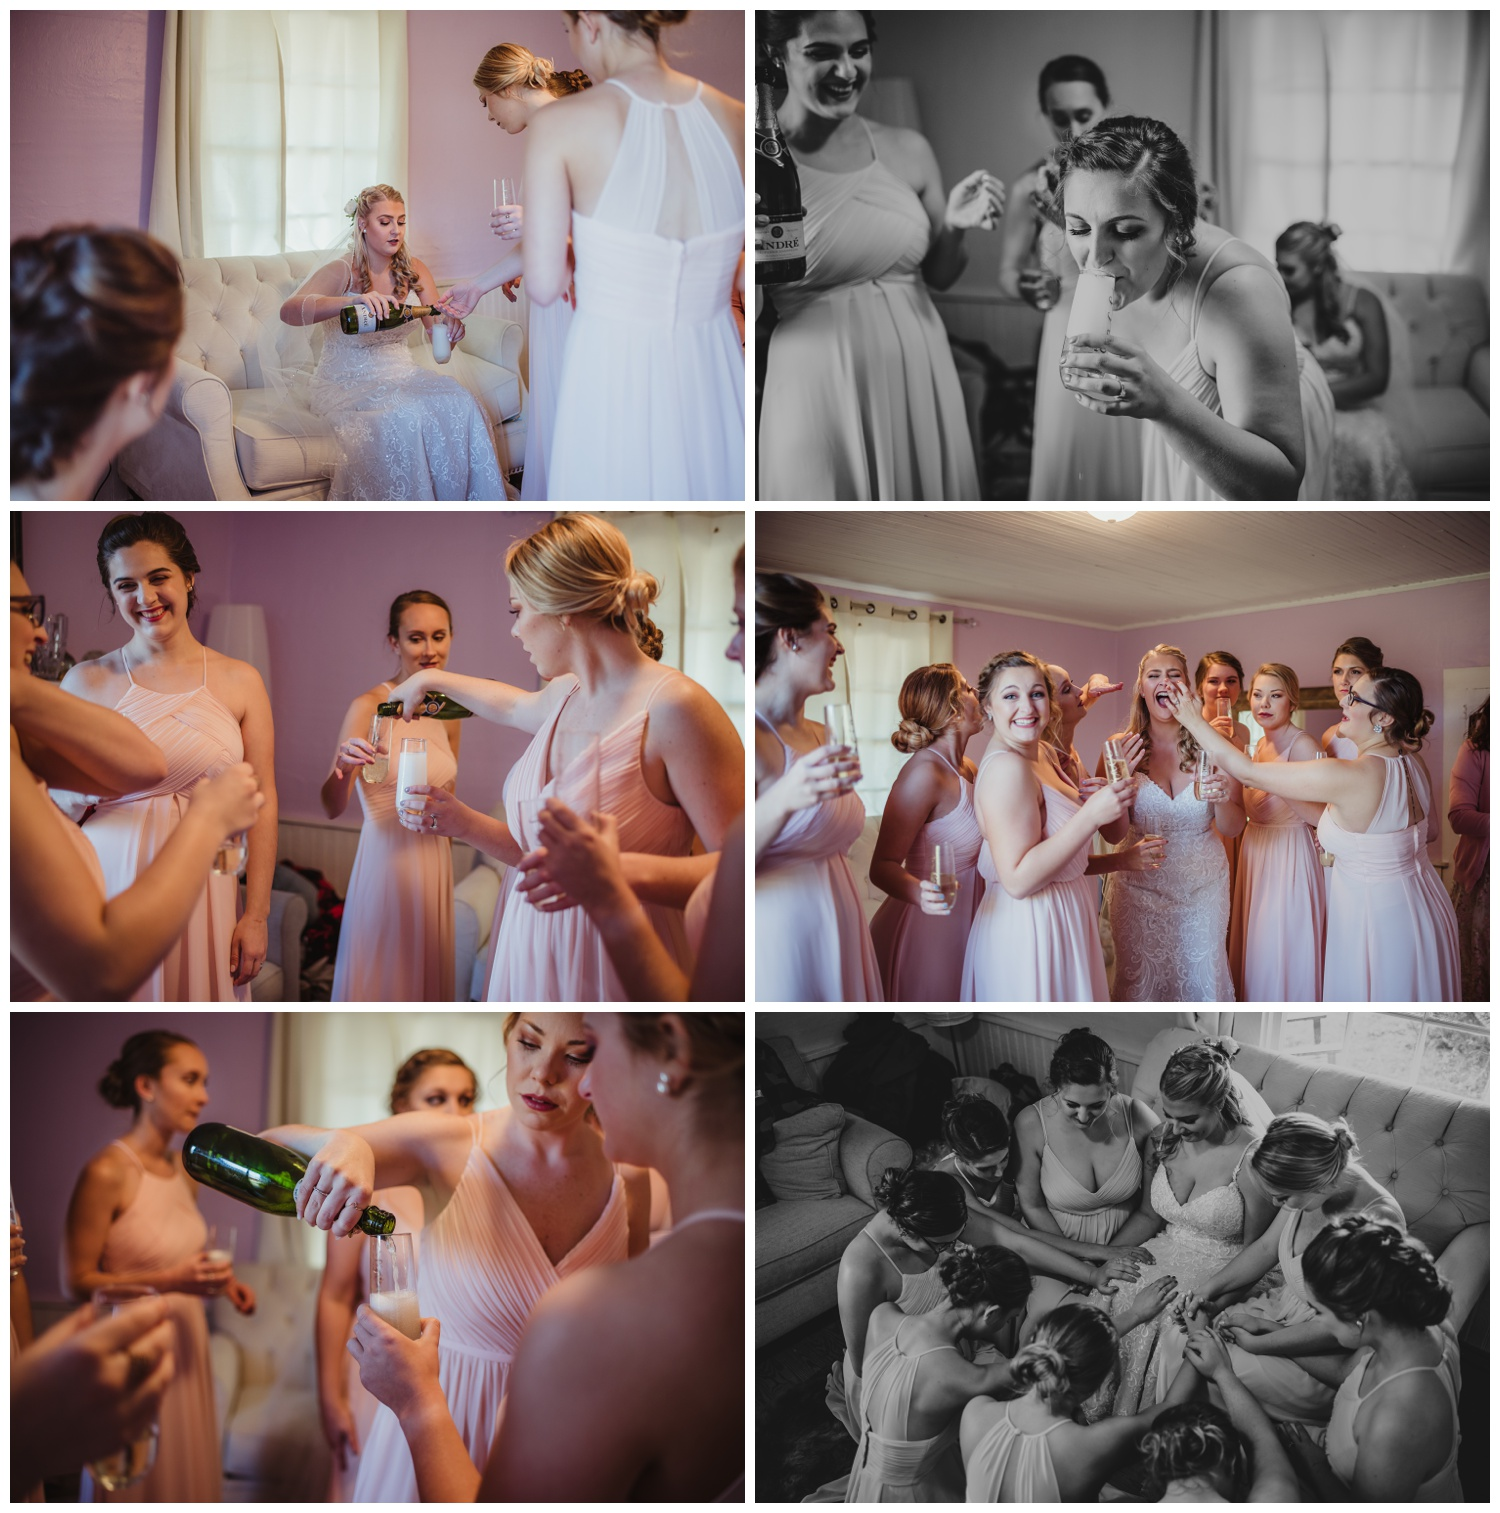 The bride and her girls toast with champagne before her wedding ceremony at The Warren Estate, images by Rose Trail Images of Rolesville, NC.